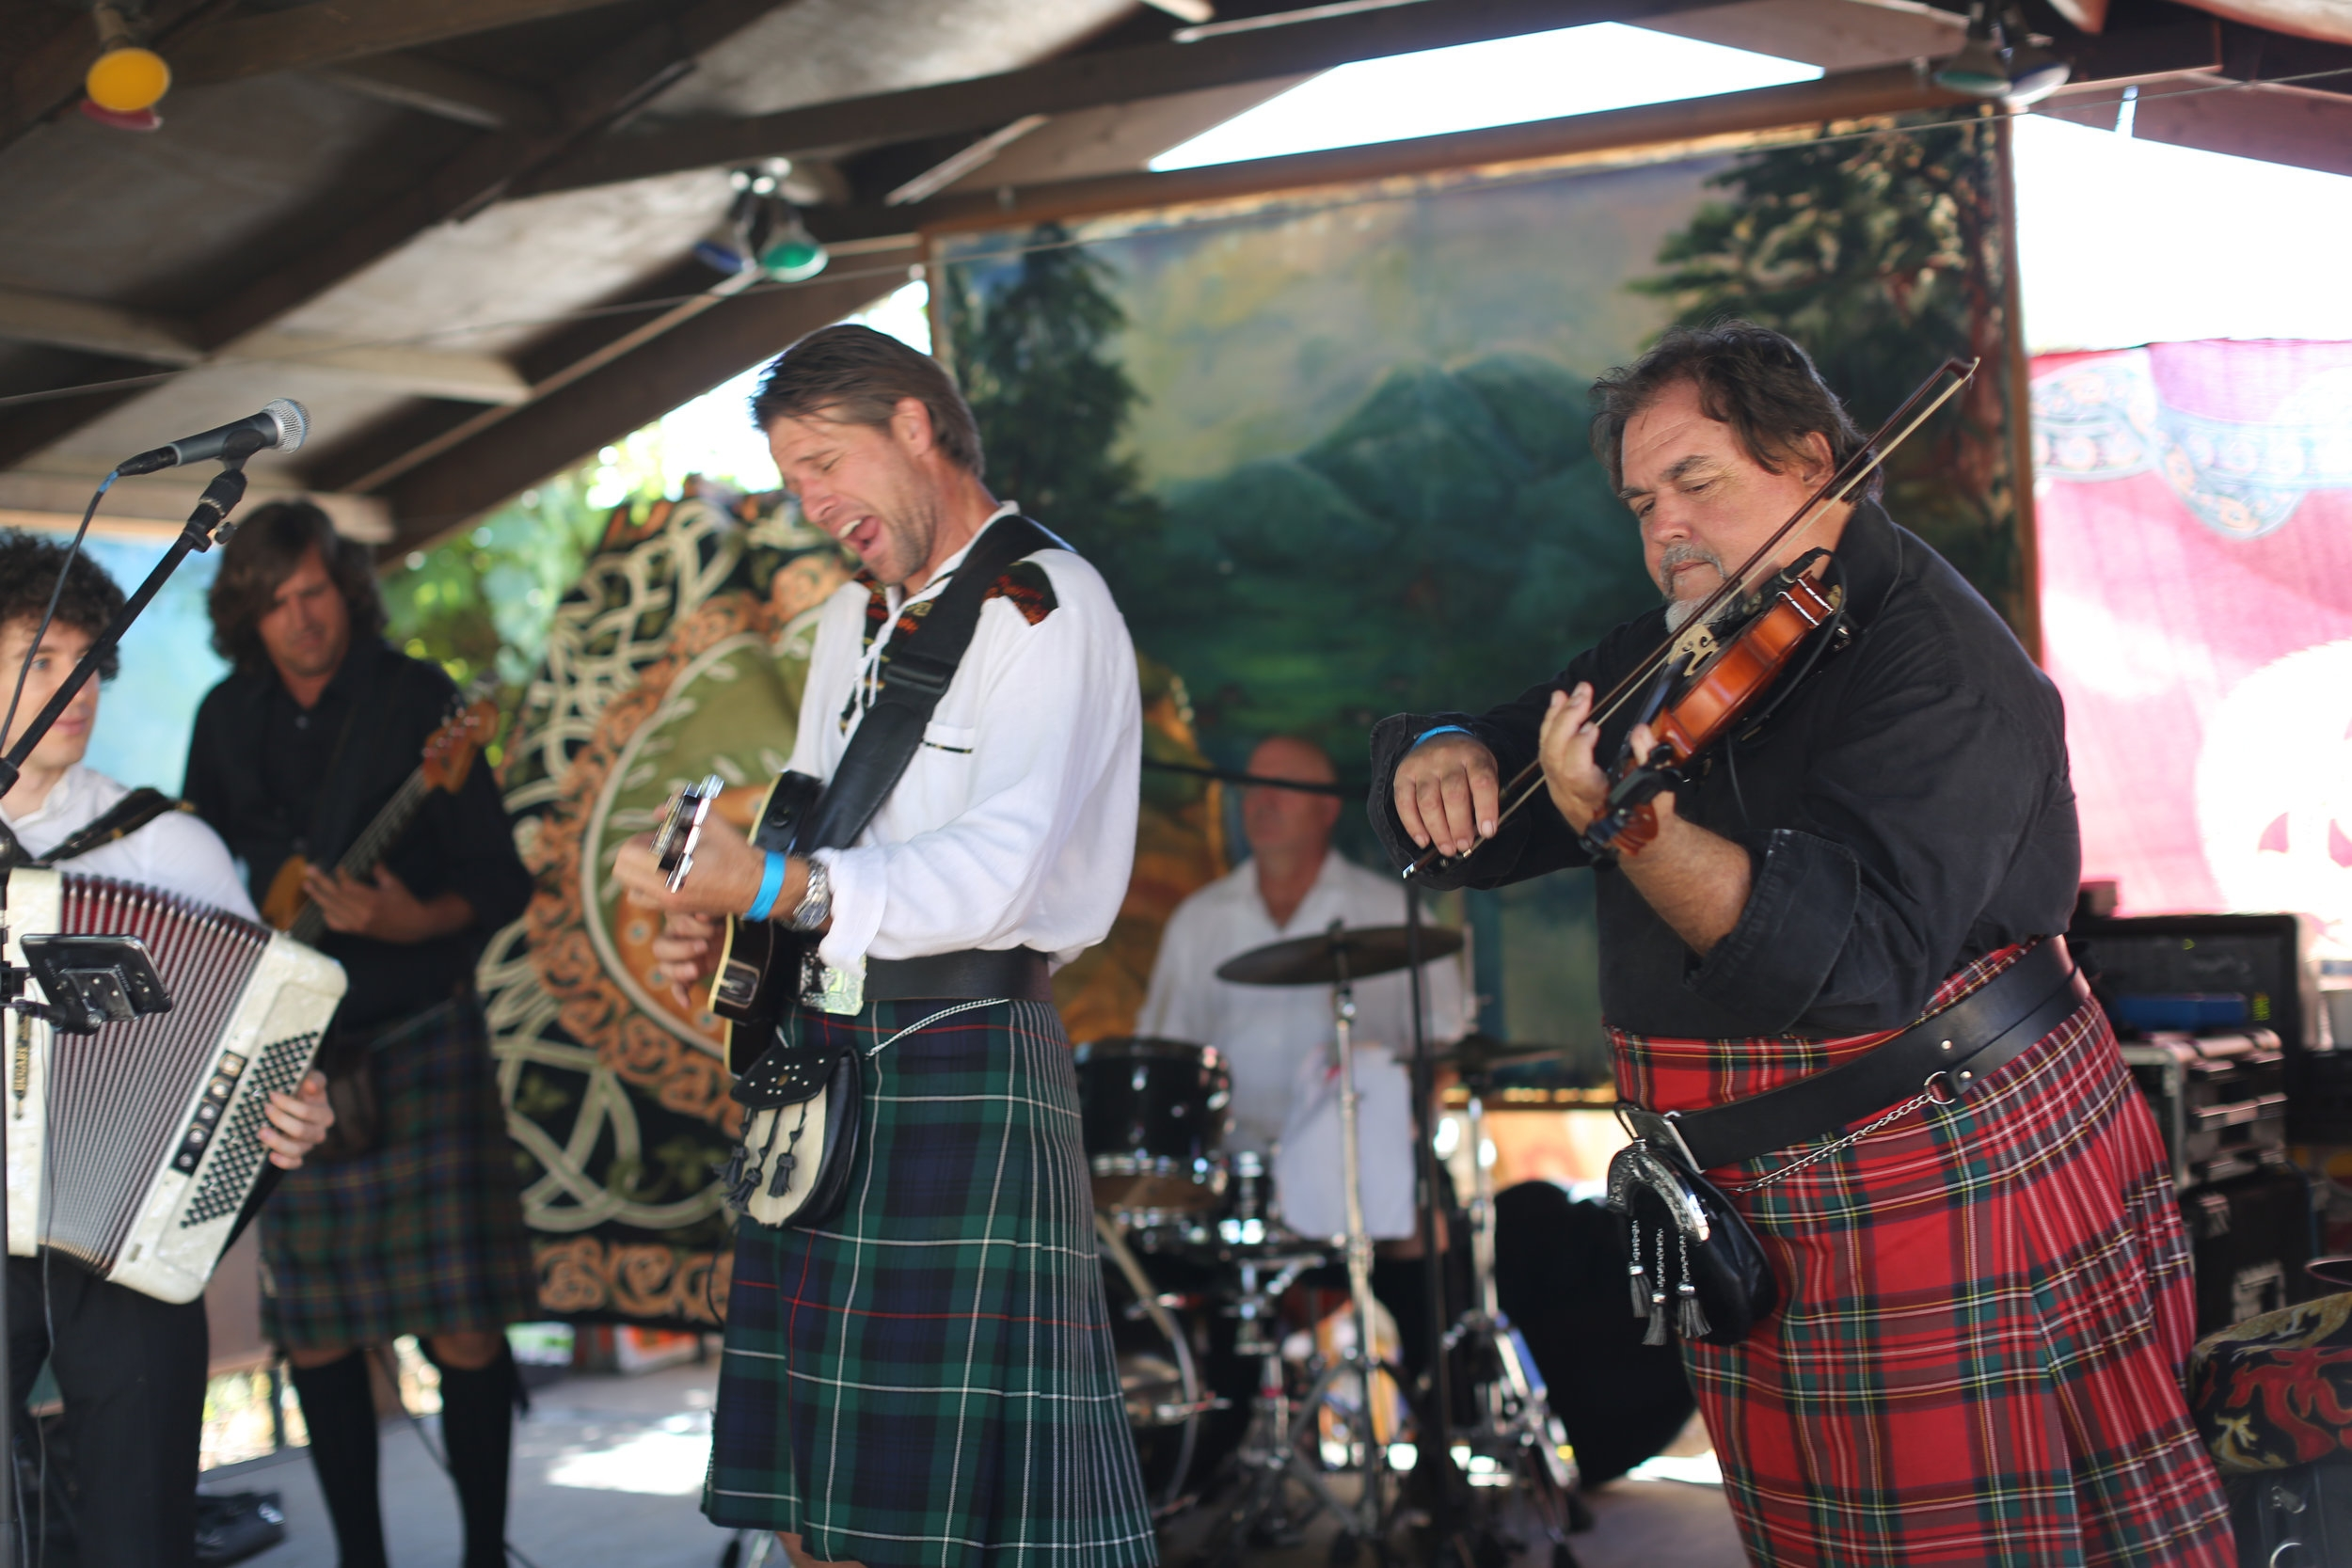 ENTERTAINMENT & COMPETITIONS - Our two stages feature some of the areas best Celtic Folk & Rock groups, and other entertainers. Be part of the show and make Viking Festival history by participating in one of our signature competitions!